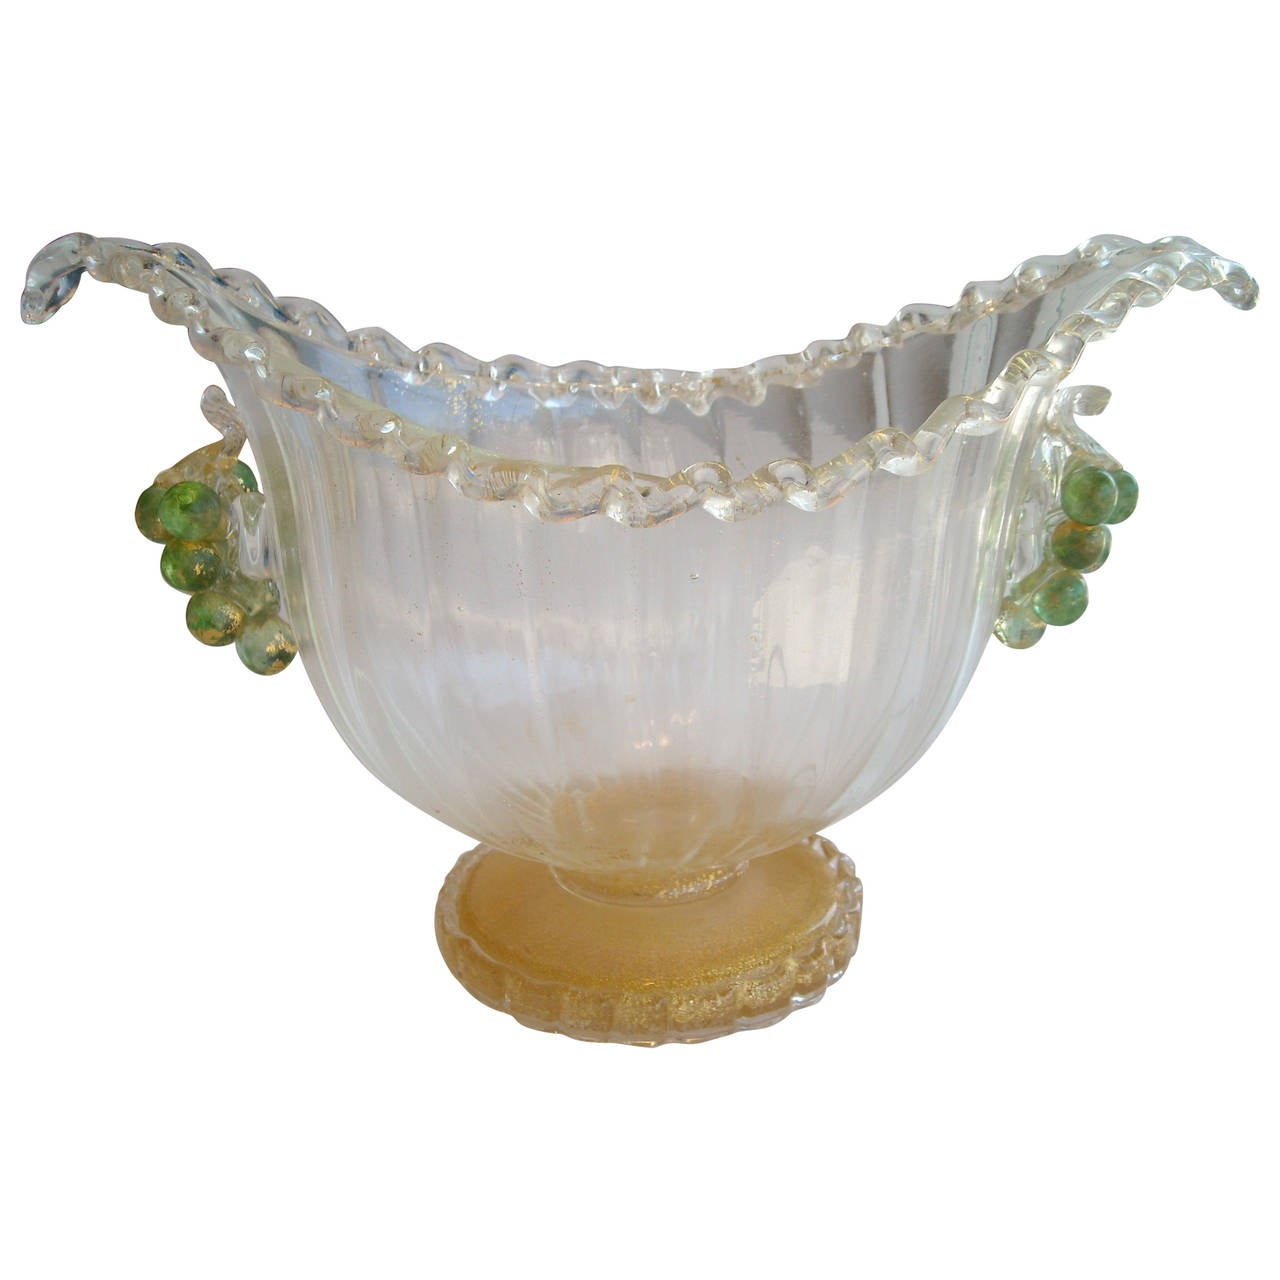 Ercole barovier murano glass and gold centerpiece or vase